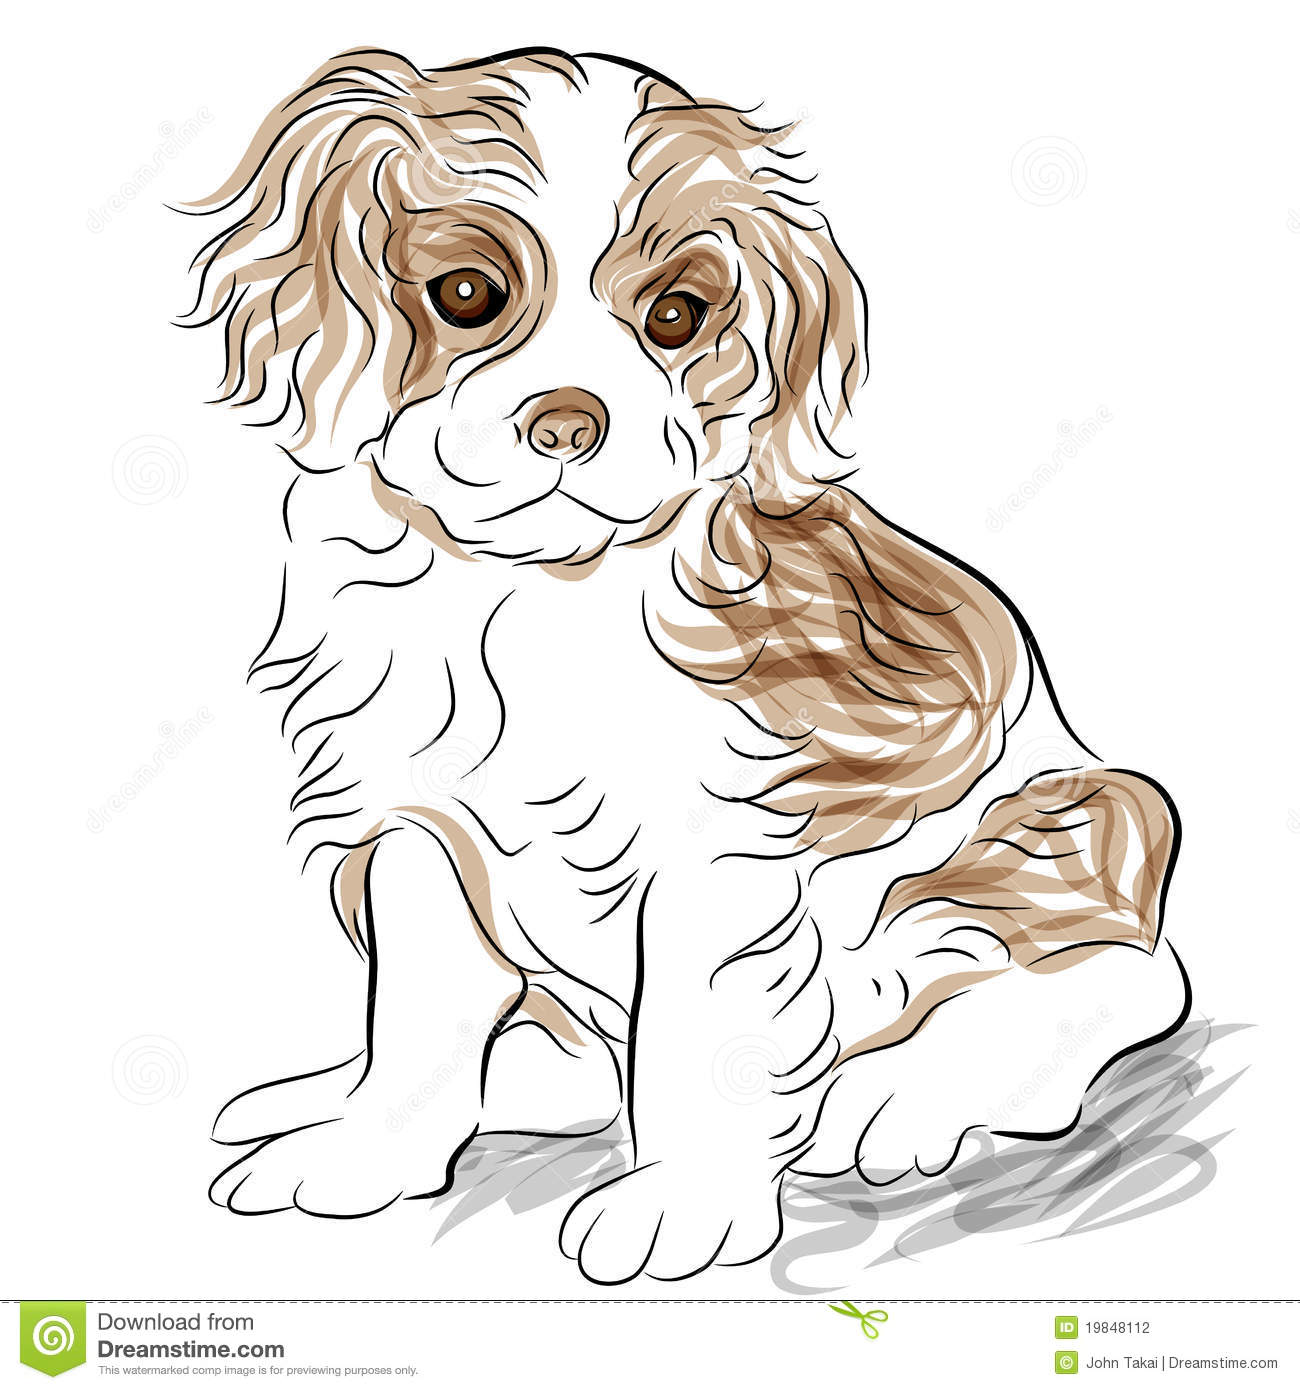 Posed Cavalier King Charles Spaniel Puppy Dog Stock Vector